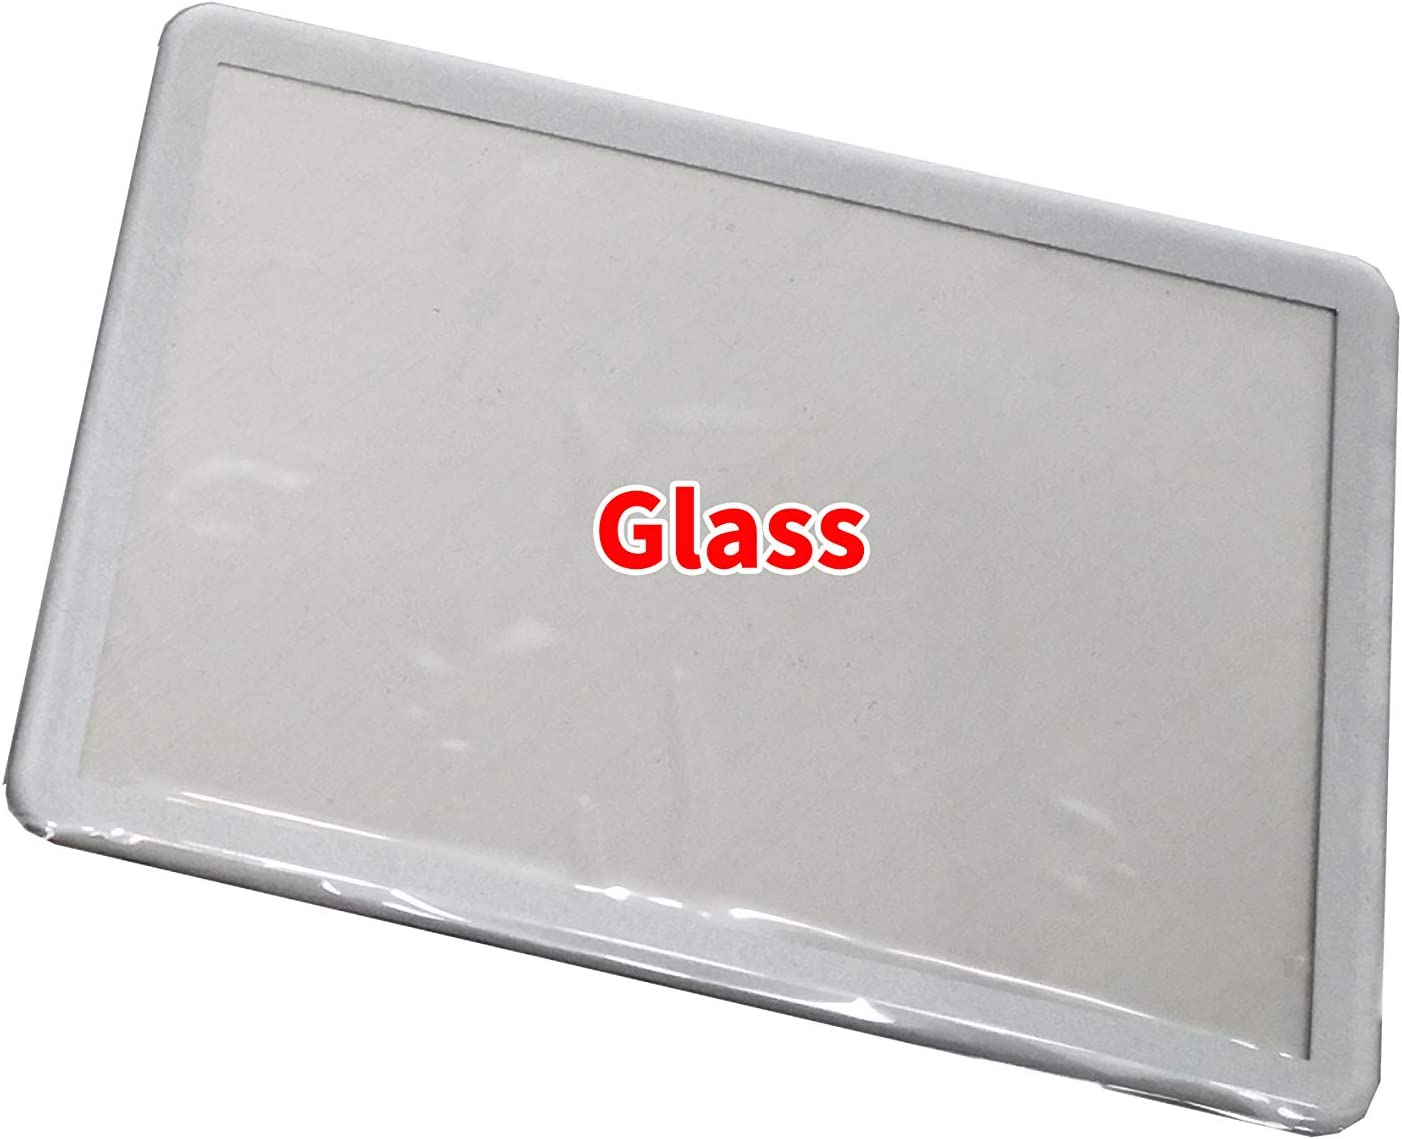 OGA Animer and price revision Odroid Go Advance Glass Screen Color Lens OFFicial shop Silver